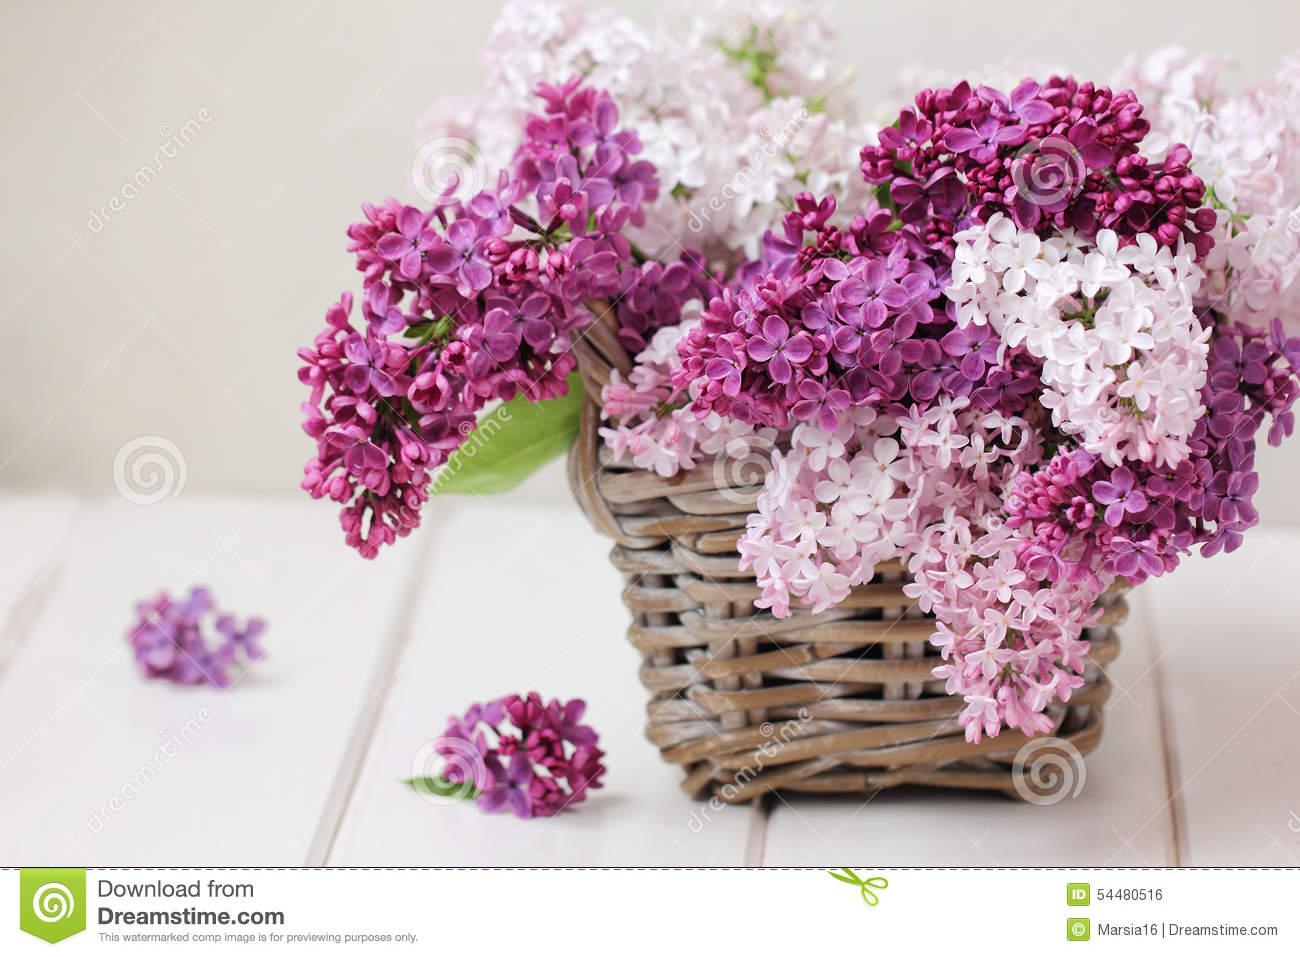 Flowers bouquet stock images 483764 photos lilac flowers bouquet on wooden plank background royalty free stock image izmirmasajfo